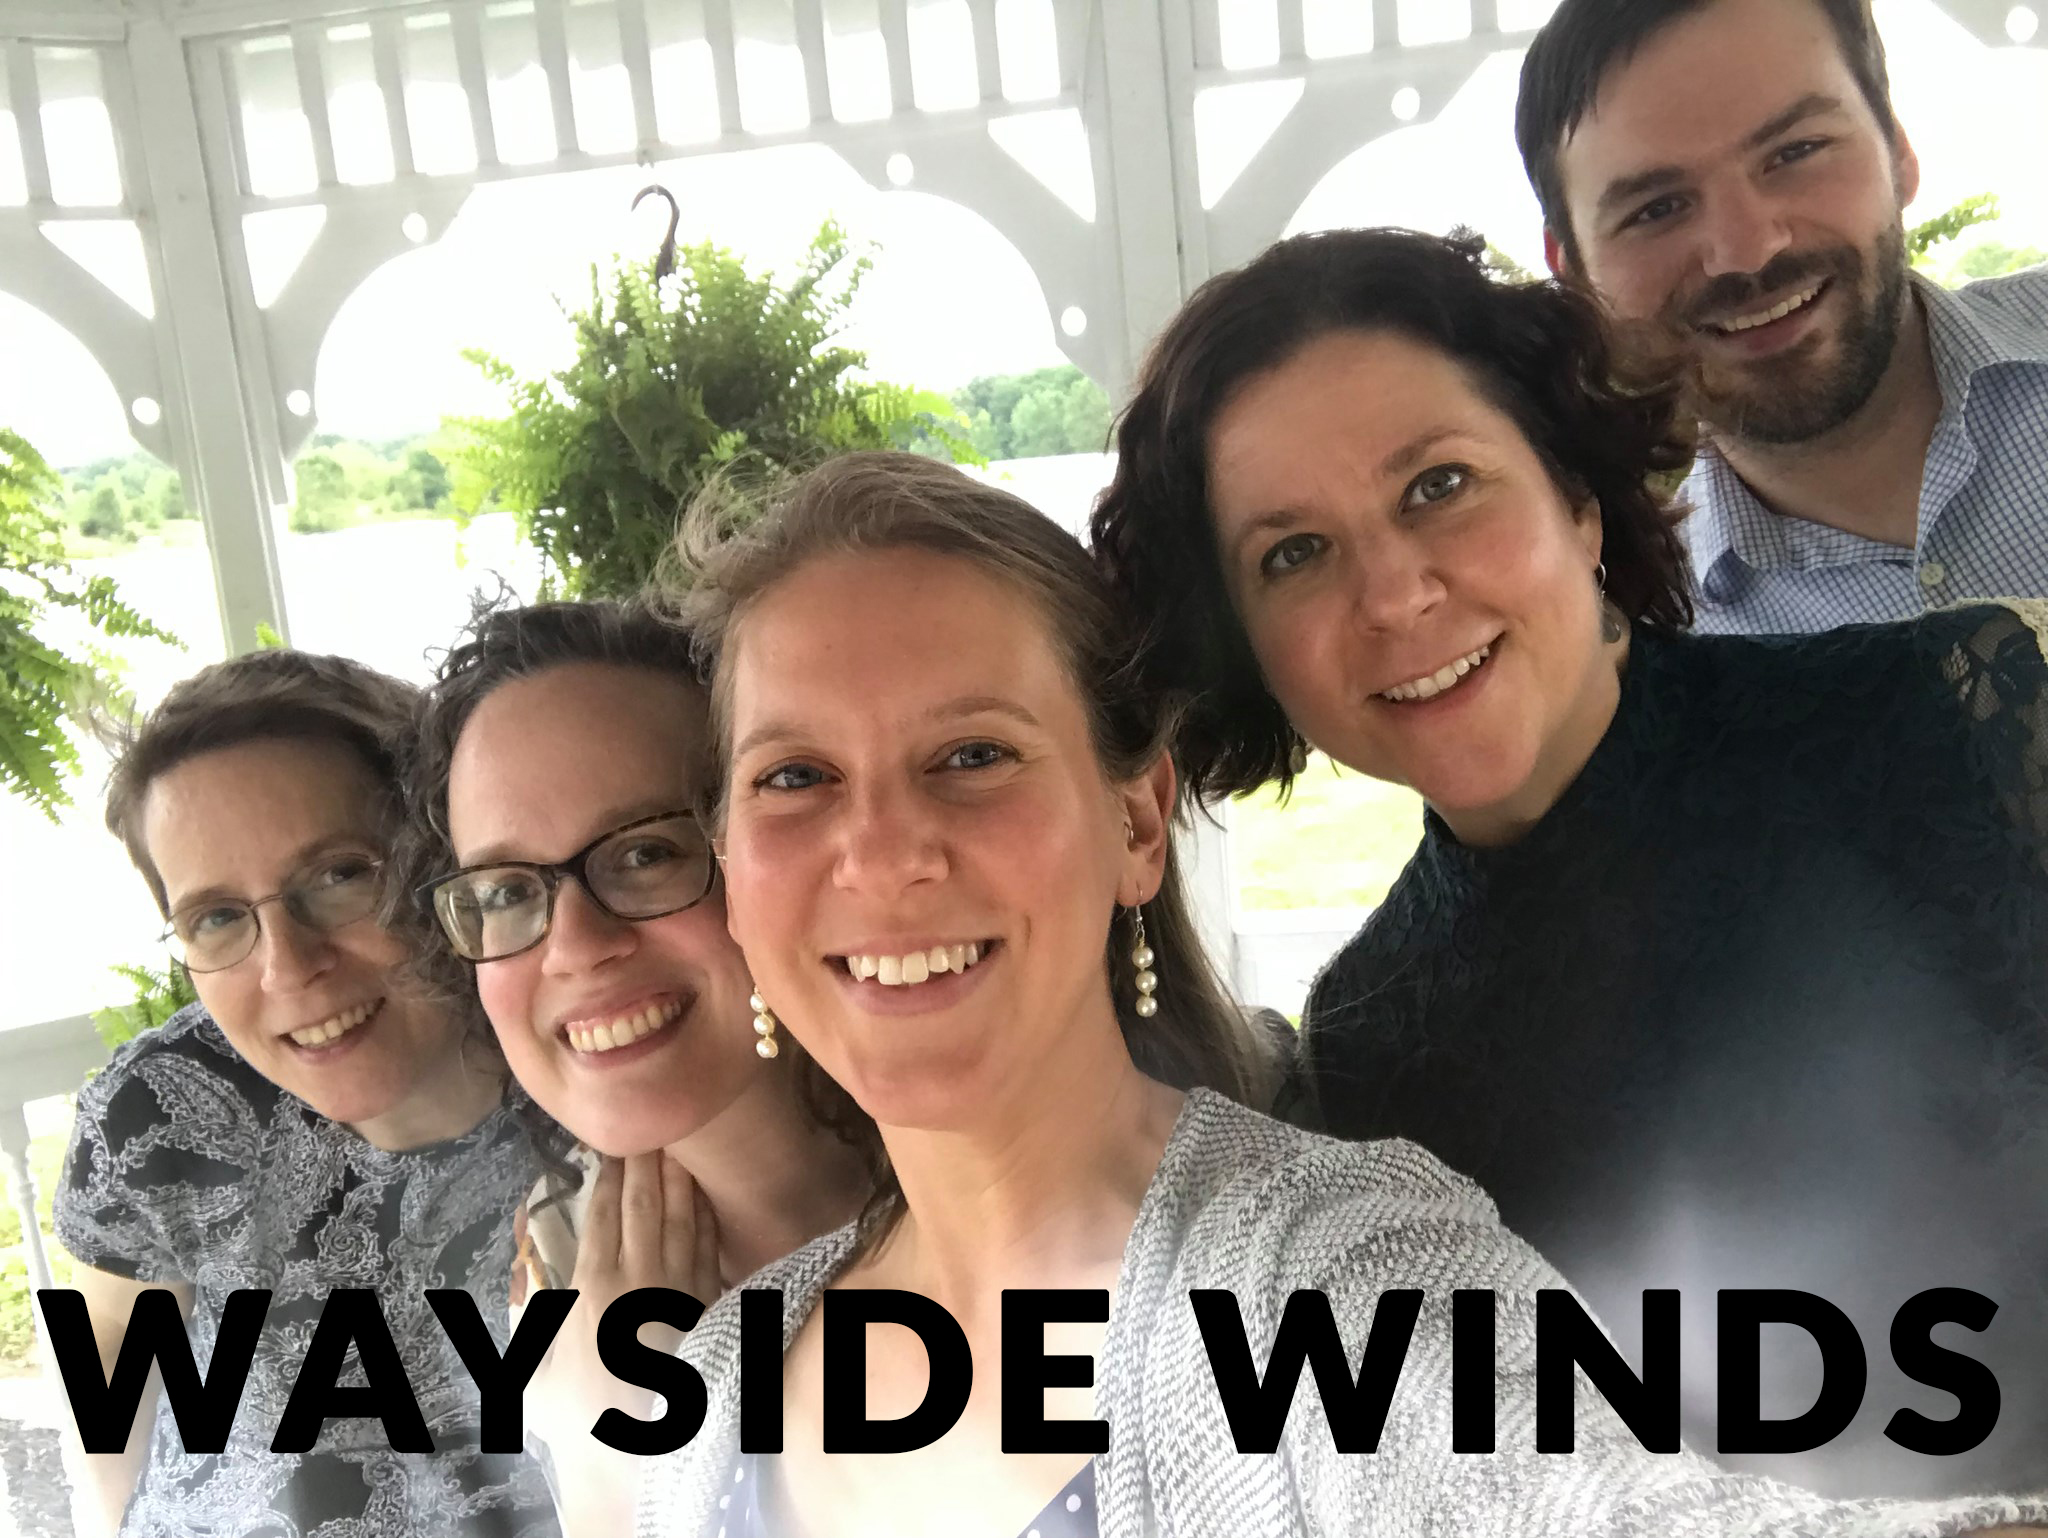 Wayside Winds TEXT.jpg